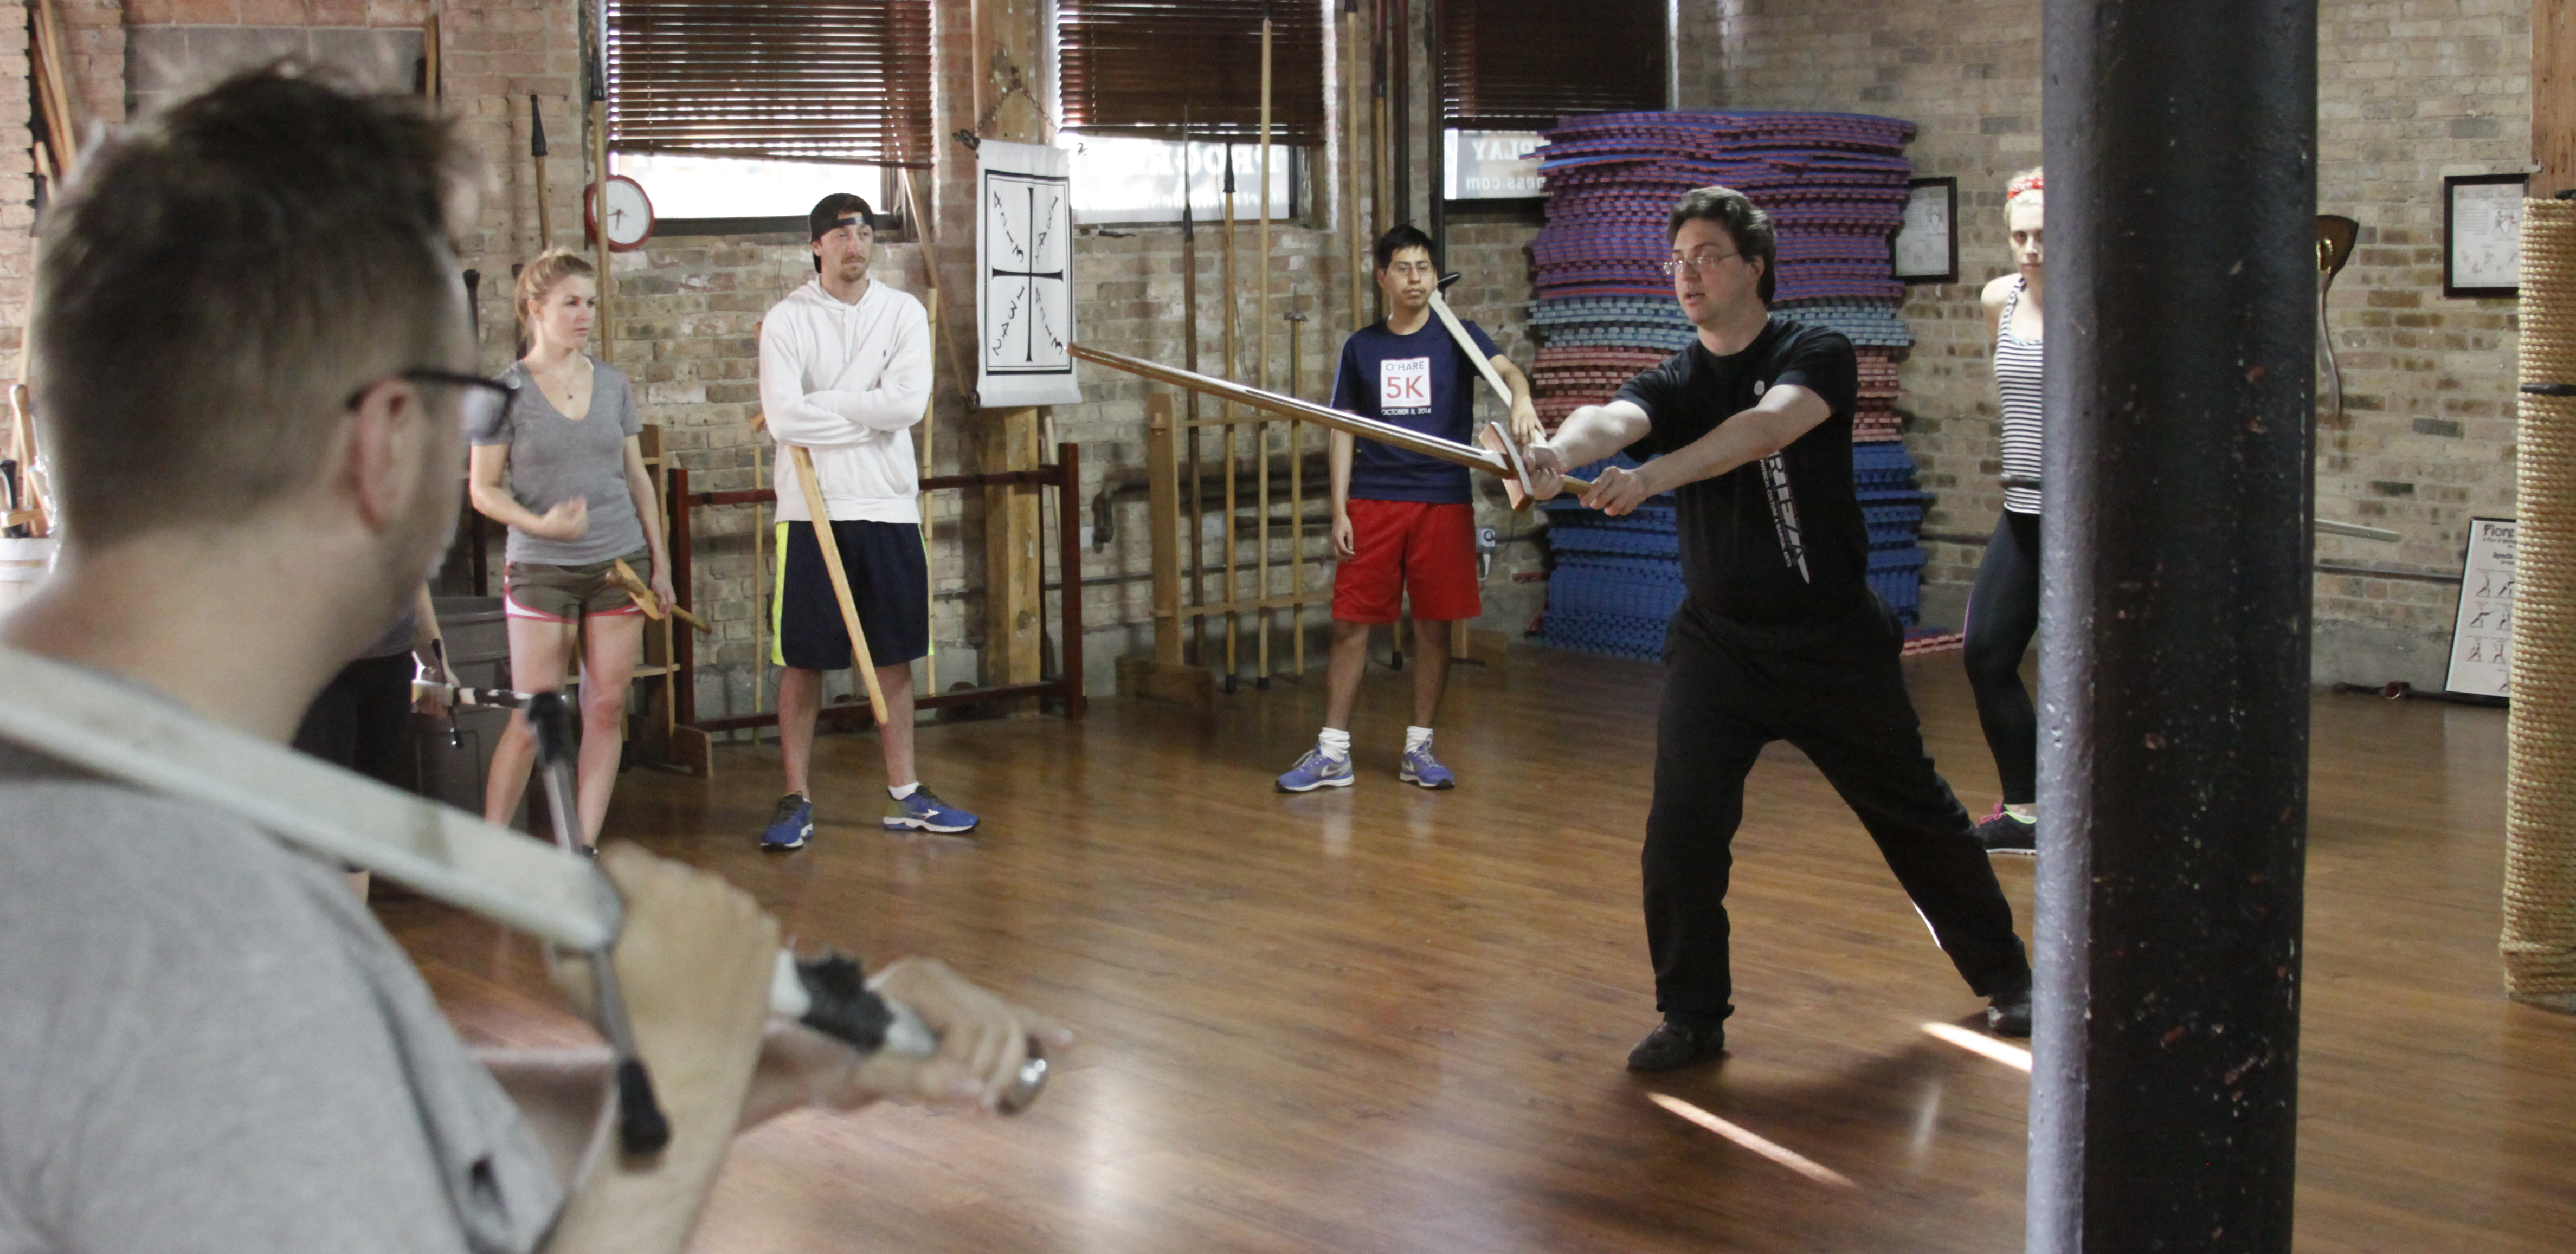 Knight classes: Inside Chicago's only school for medieval longsword | Polygon